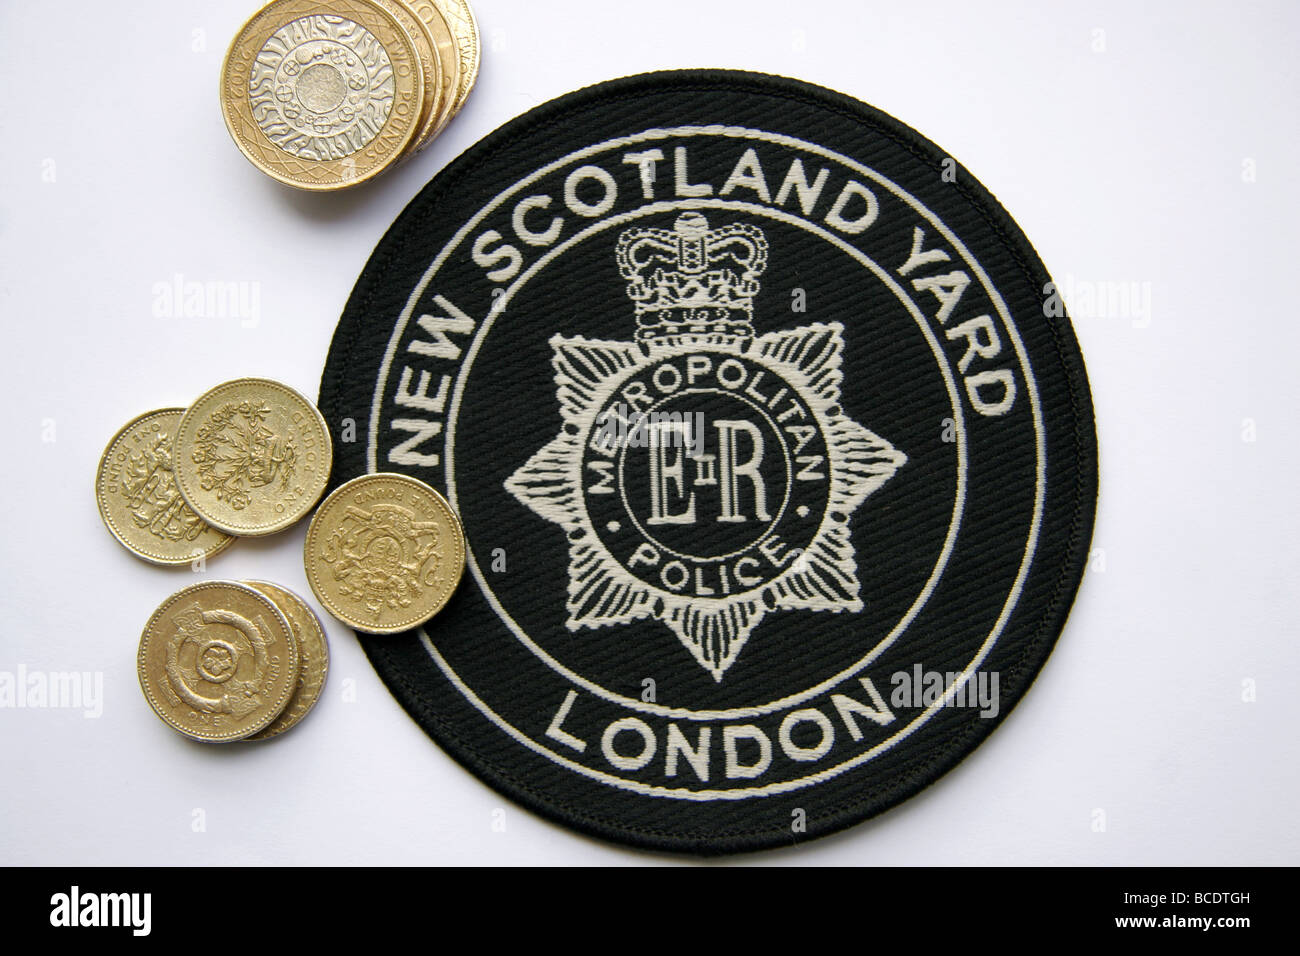 London Metropolitan Police New Scotland Yard patch and pound coins - Stock Image